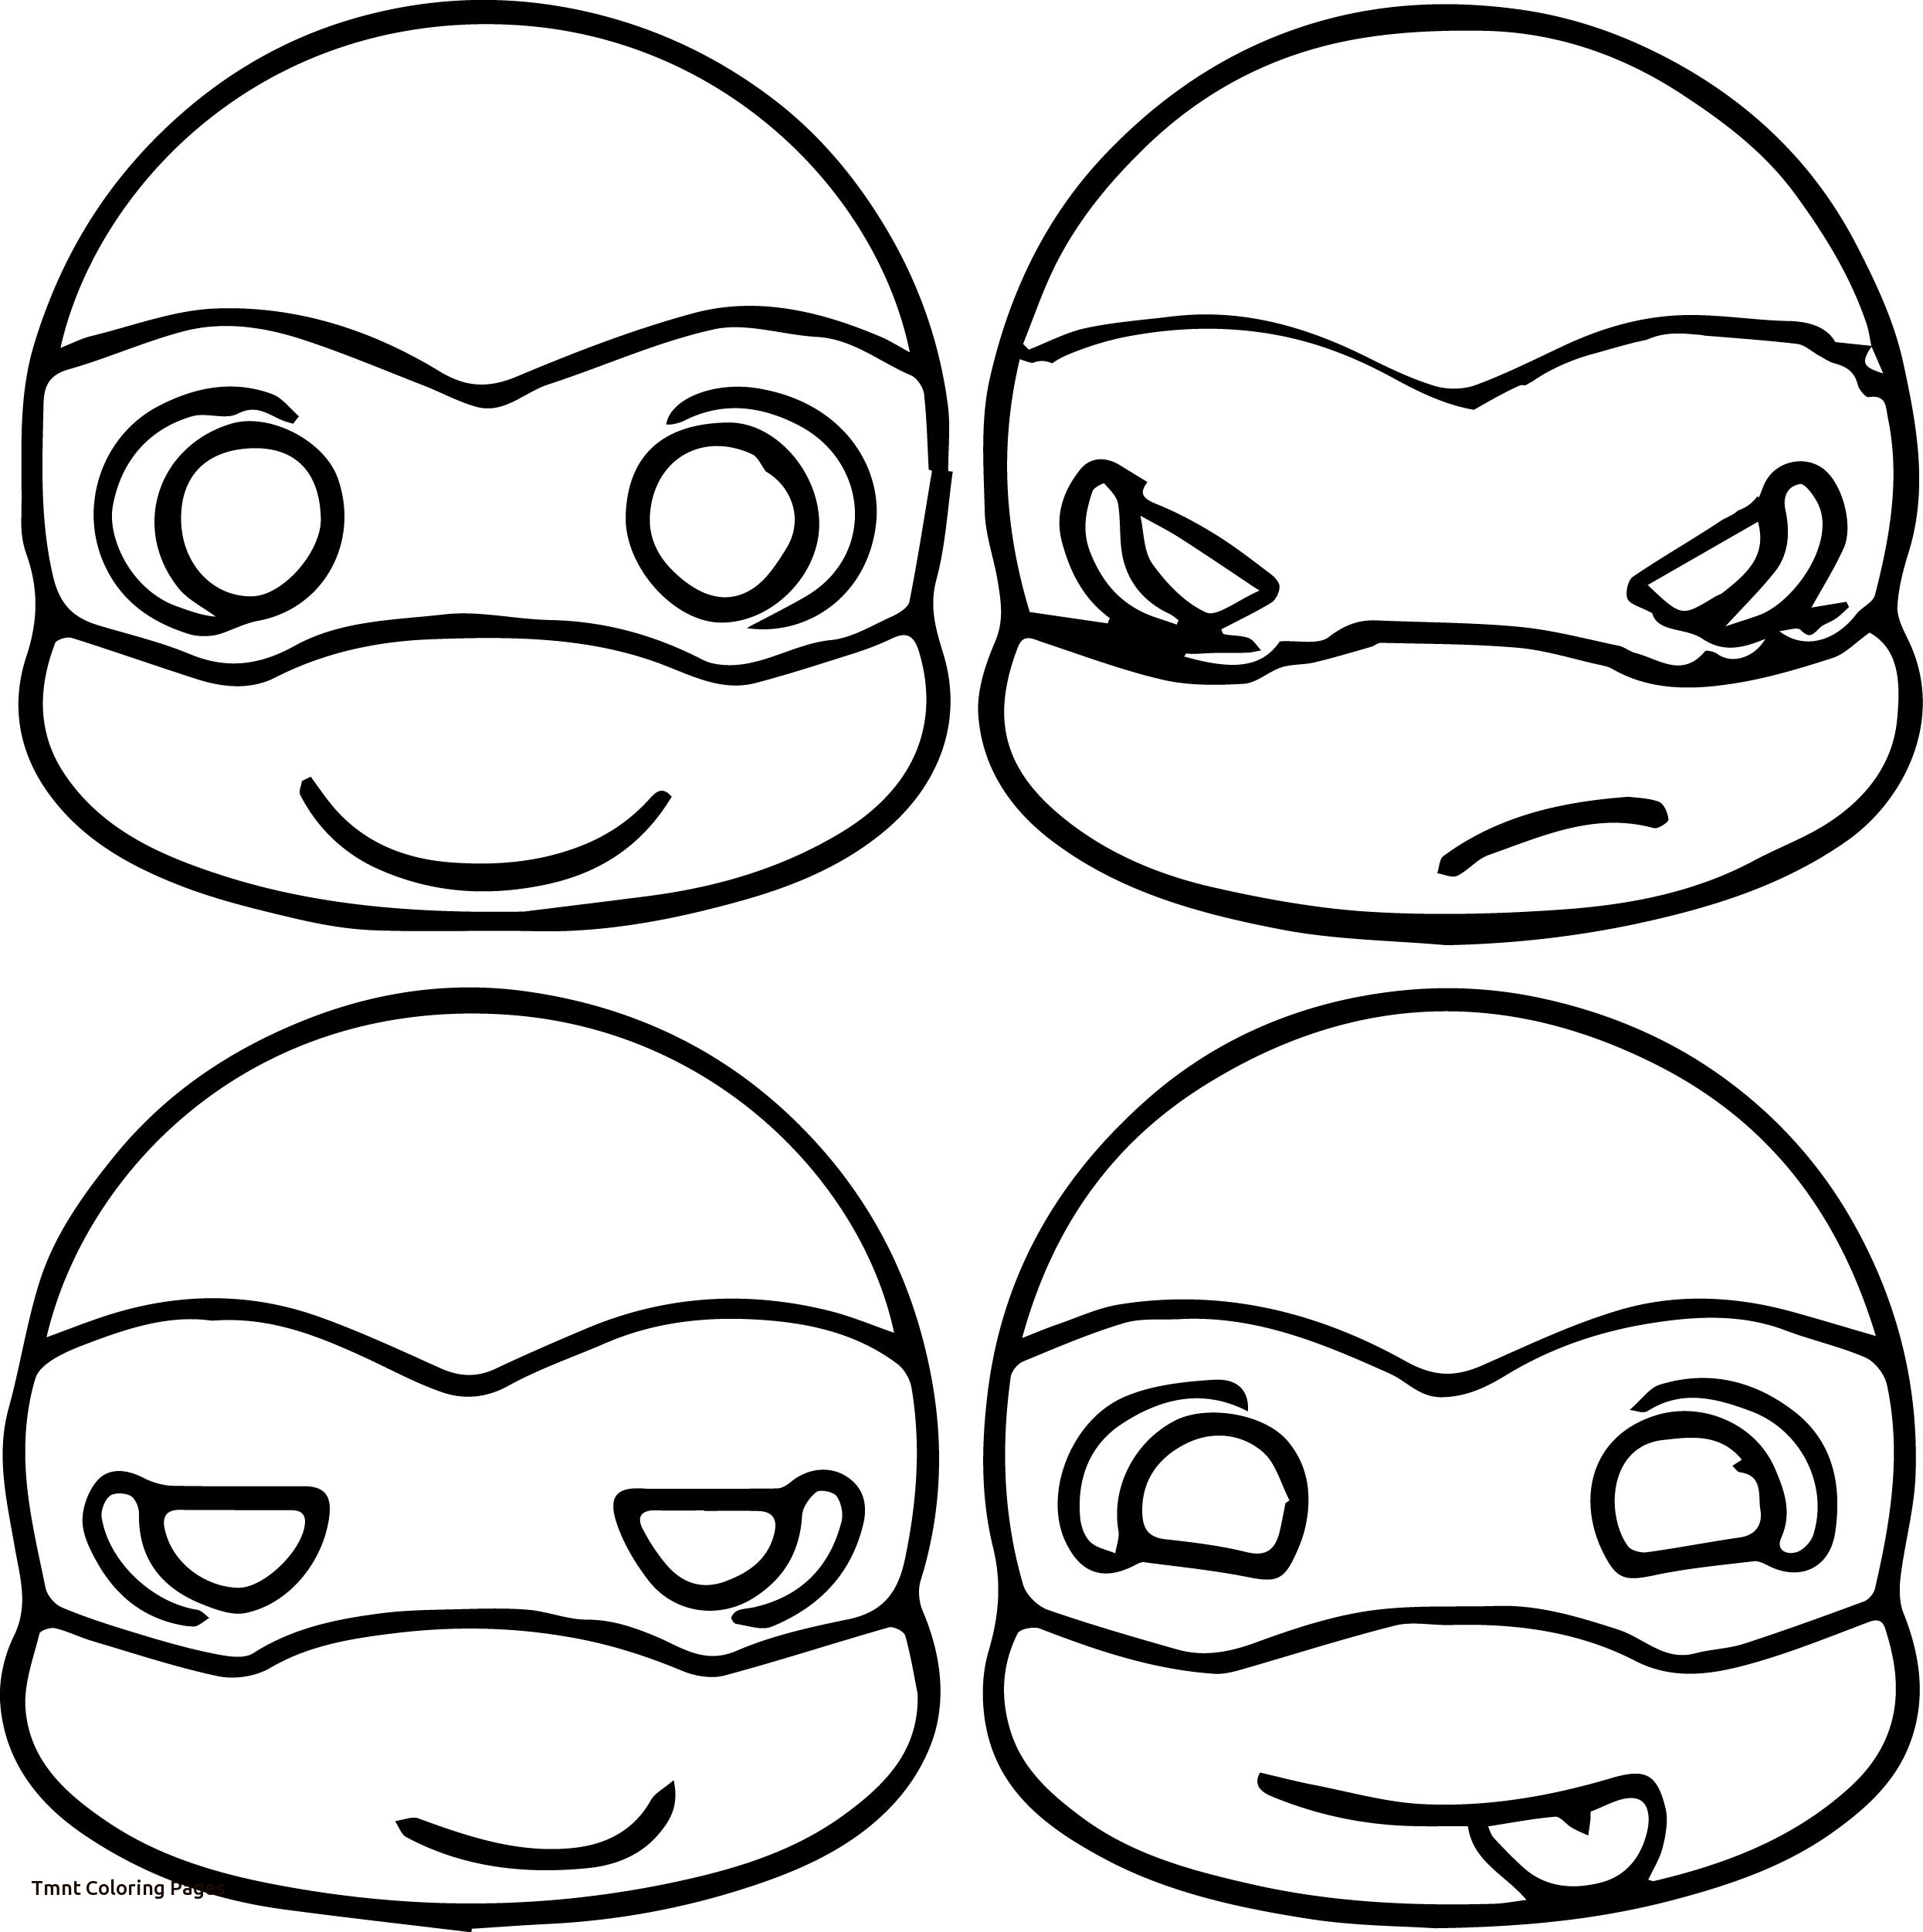 2490x2502 Nice Ninja Turtle Cartoon Coloring Pages Silhouette For Tmnt